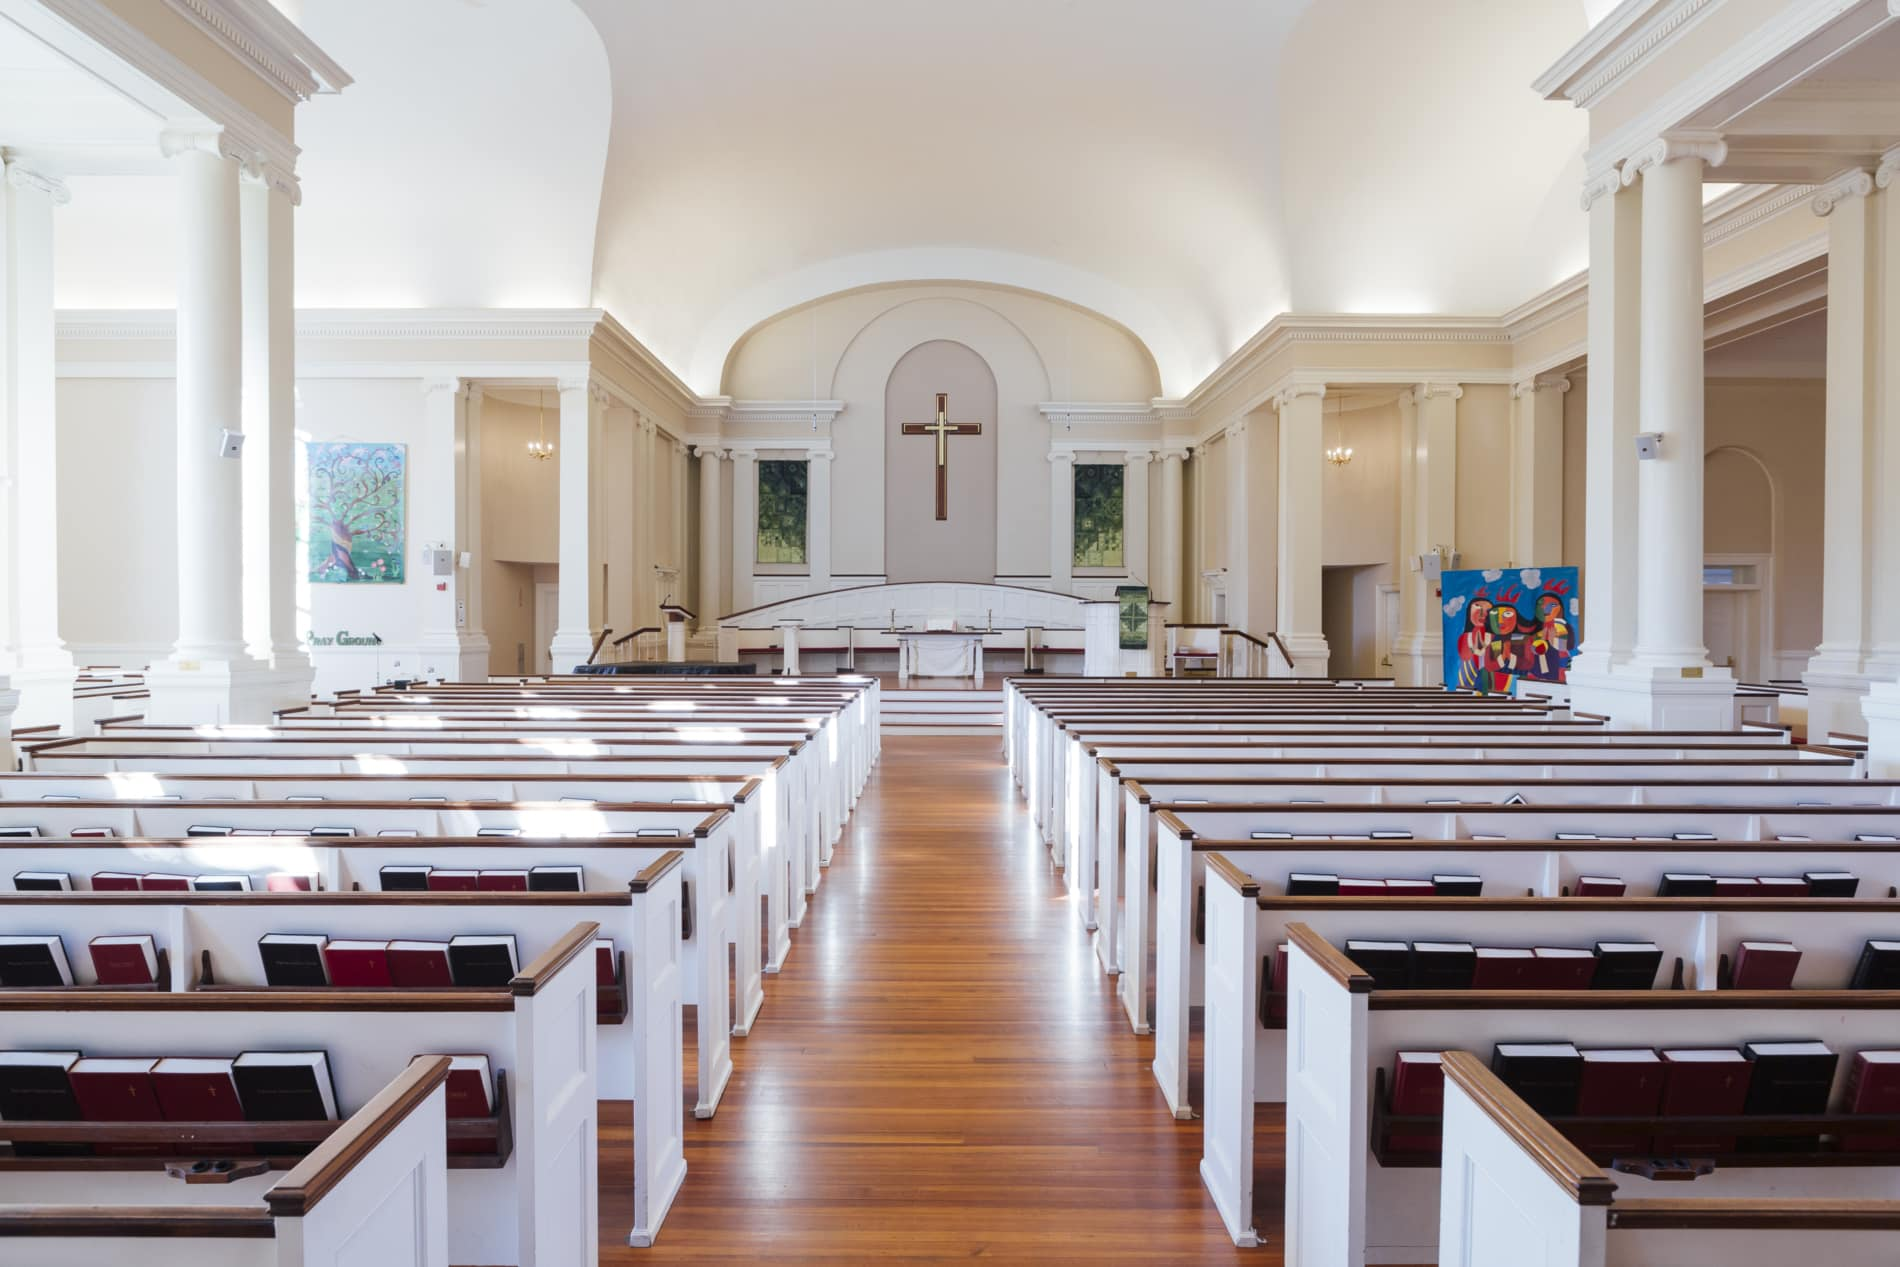 Sanctuary of the Wellesley Village Church showing communion table and large cross on the wall